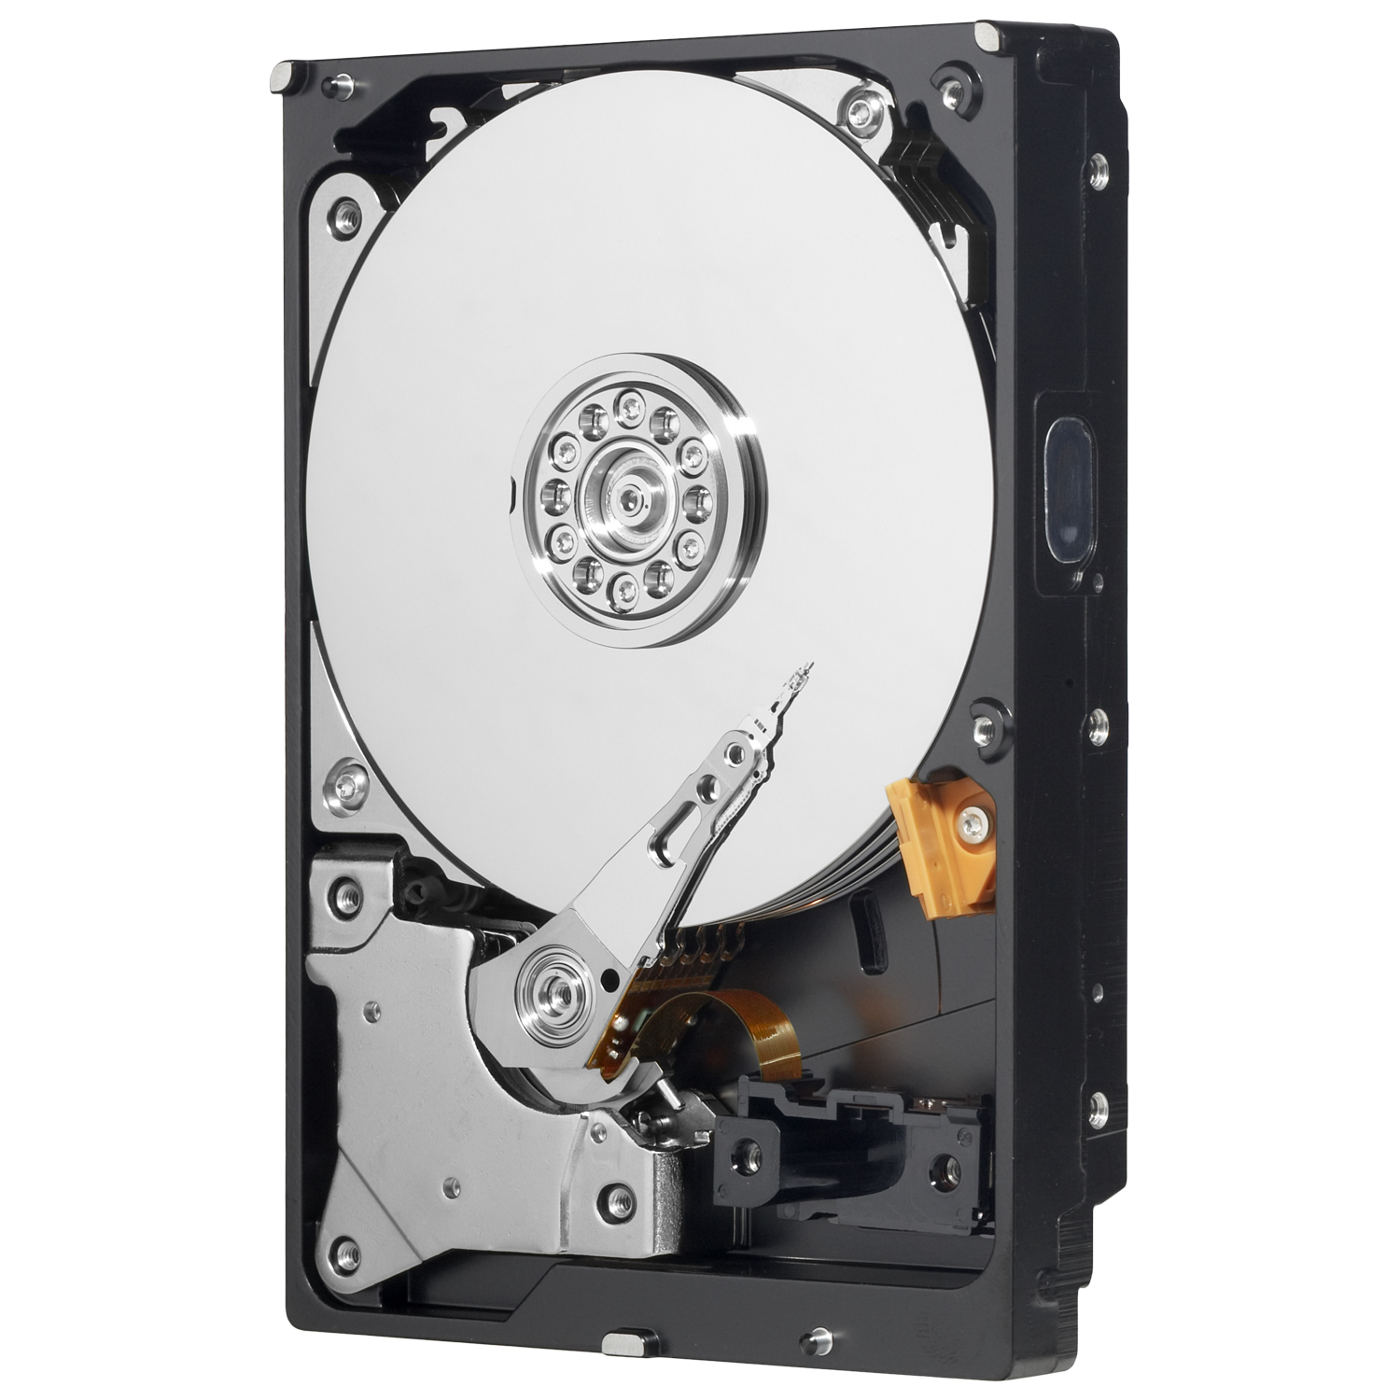 "Disque dur interne WD AV-GP 2 To SATA 6Gb/s Disque dur 3.5"" 2 To 7200 RPM 64 Mo Serial ATA 6Gb/s - WD20EURX (bulk)"